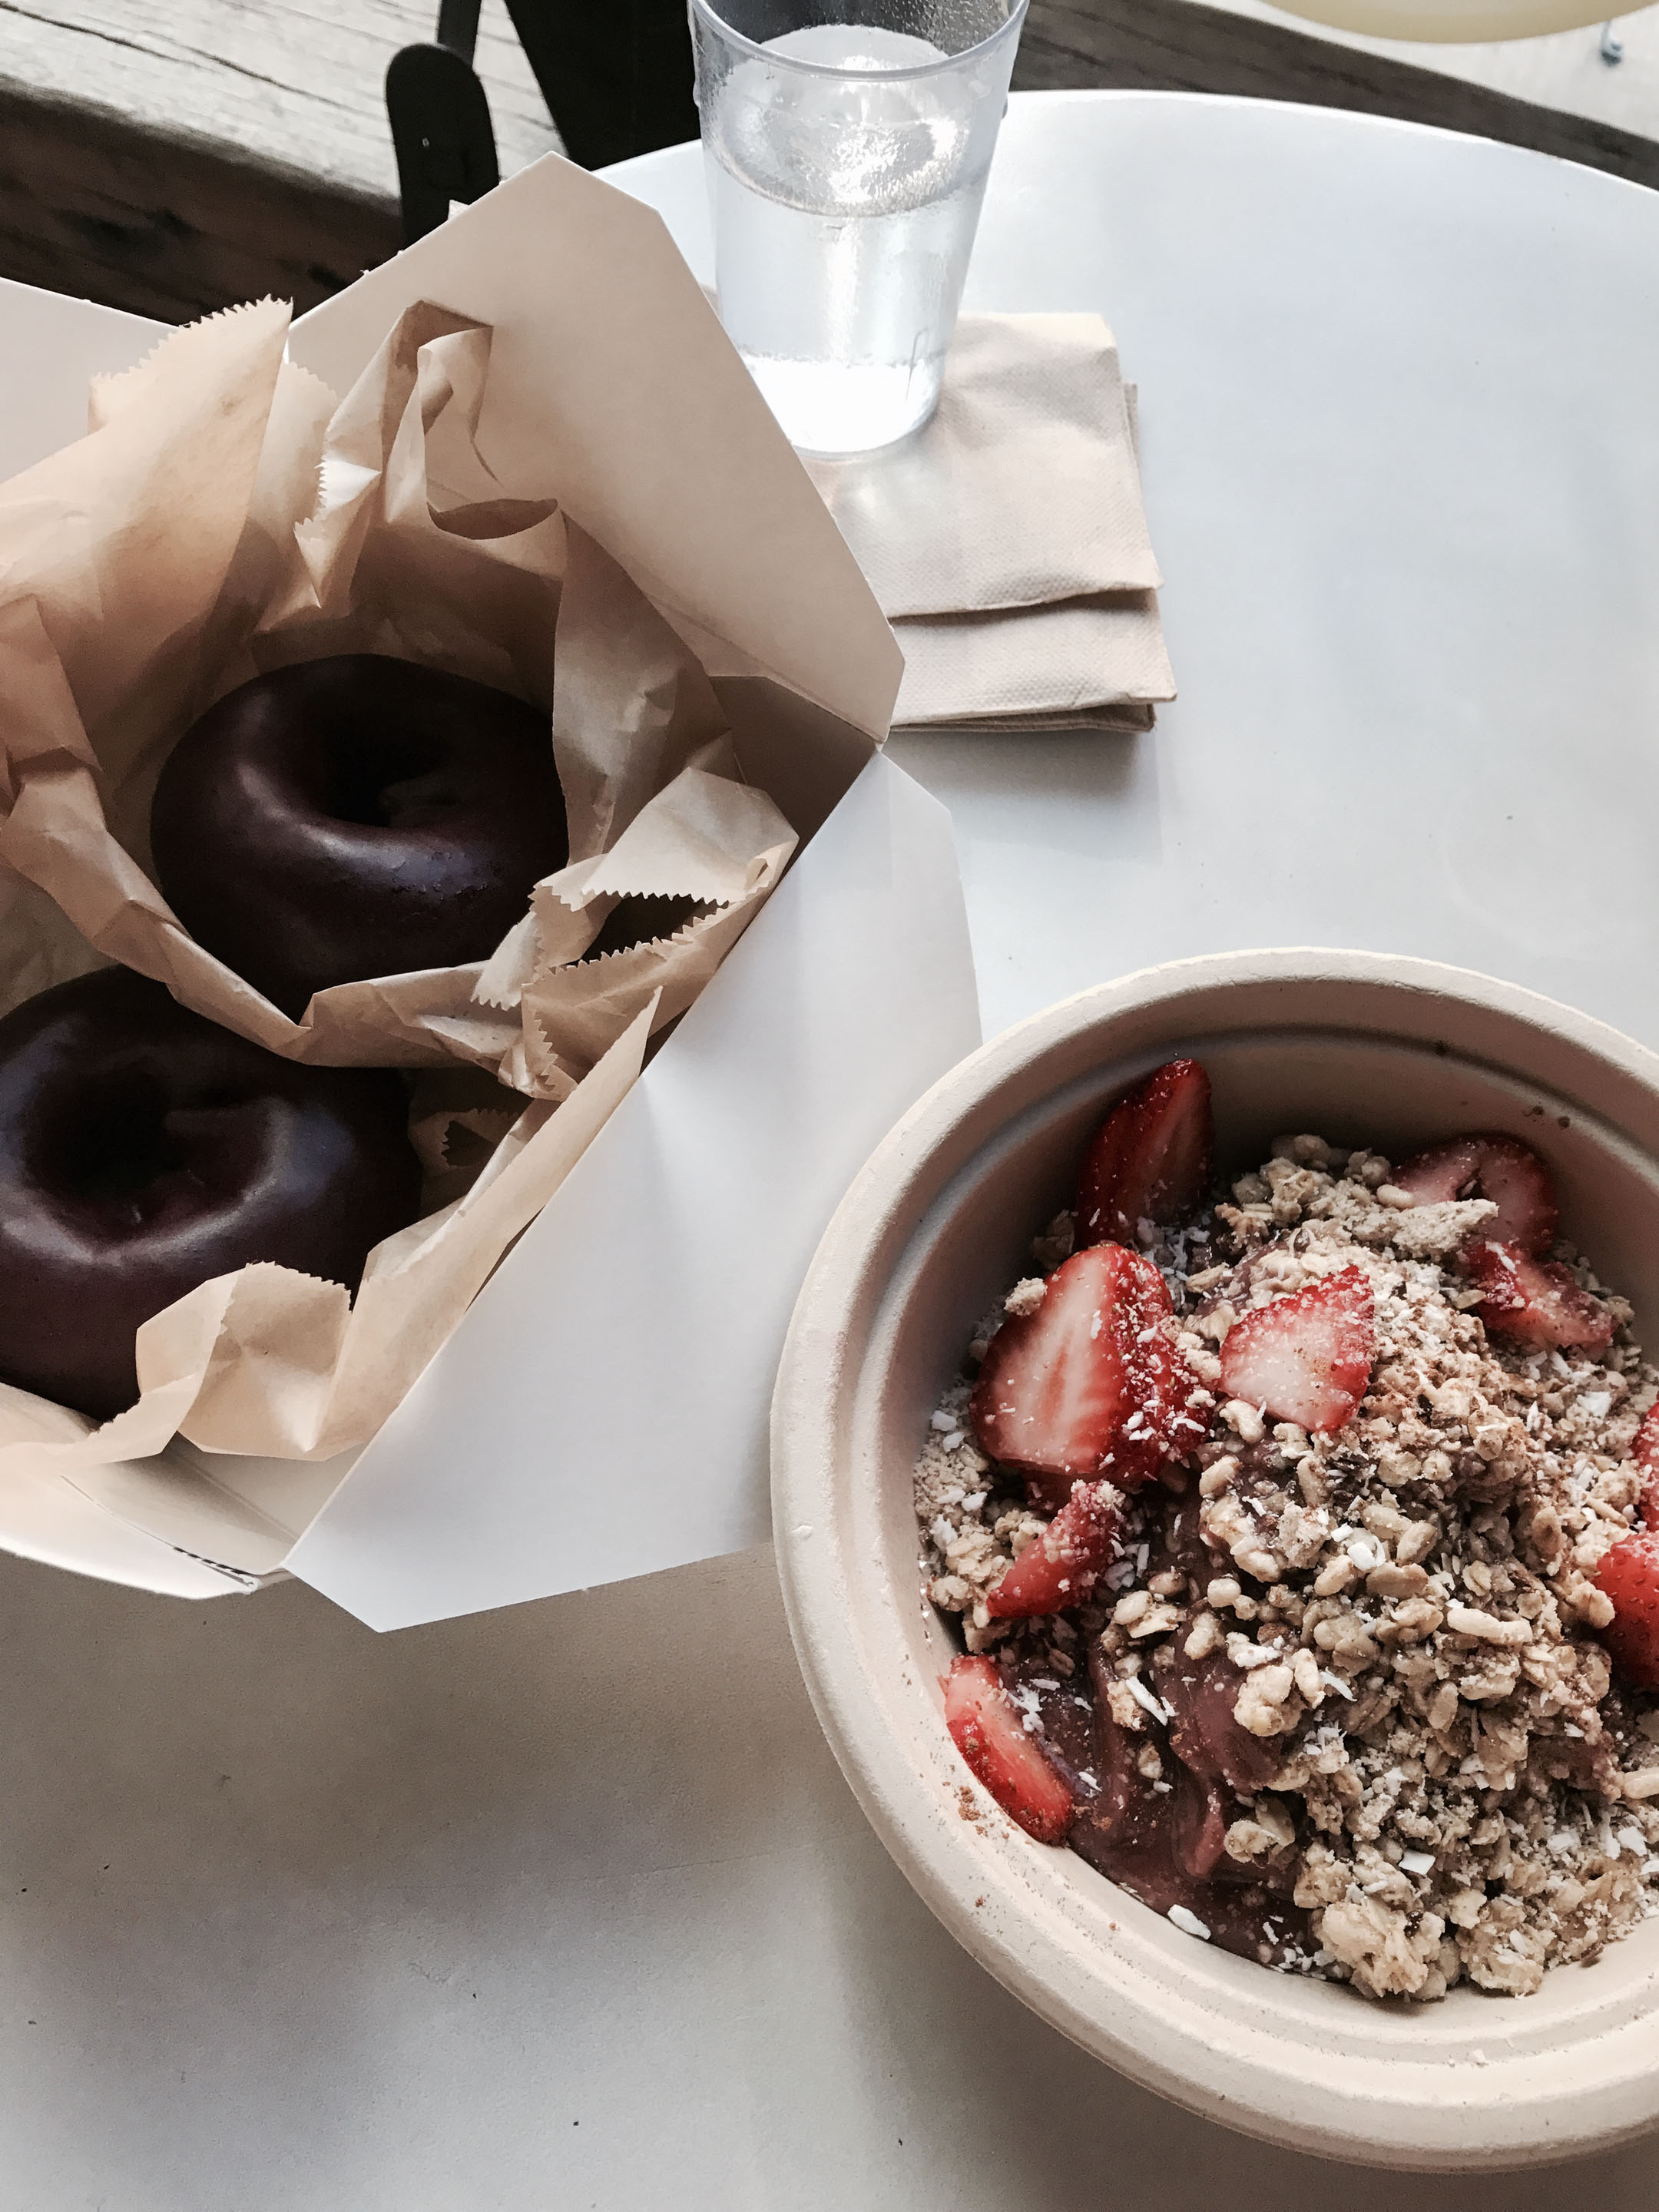 Blue star donuts and Kure Acai bowls